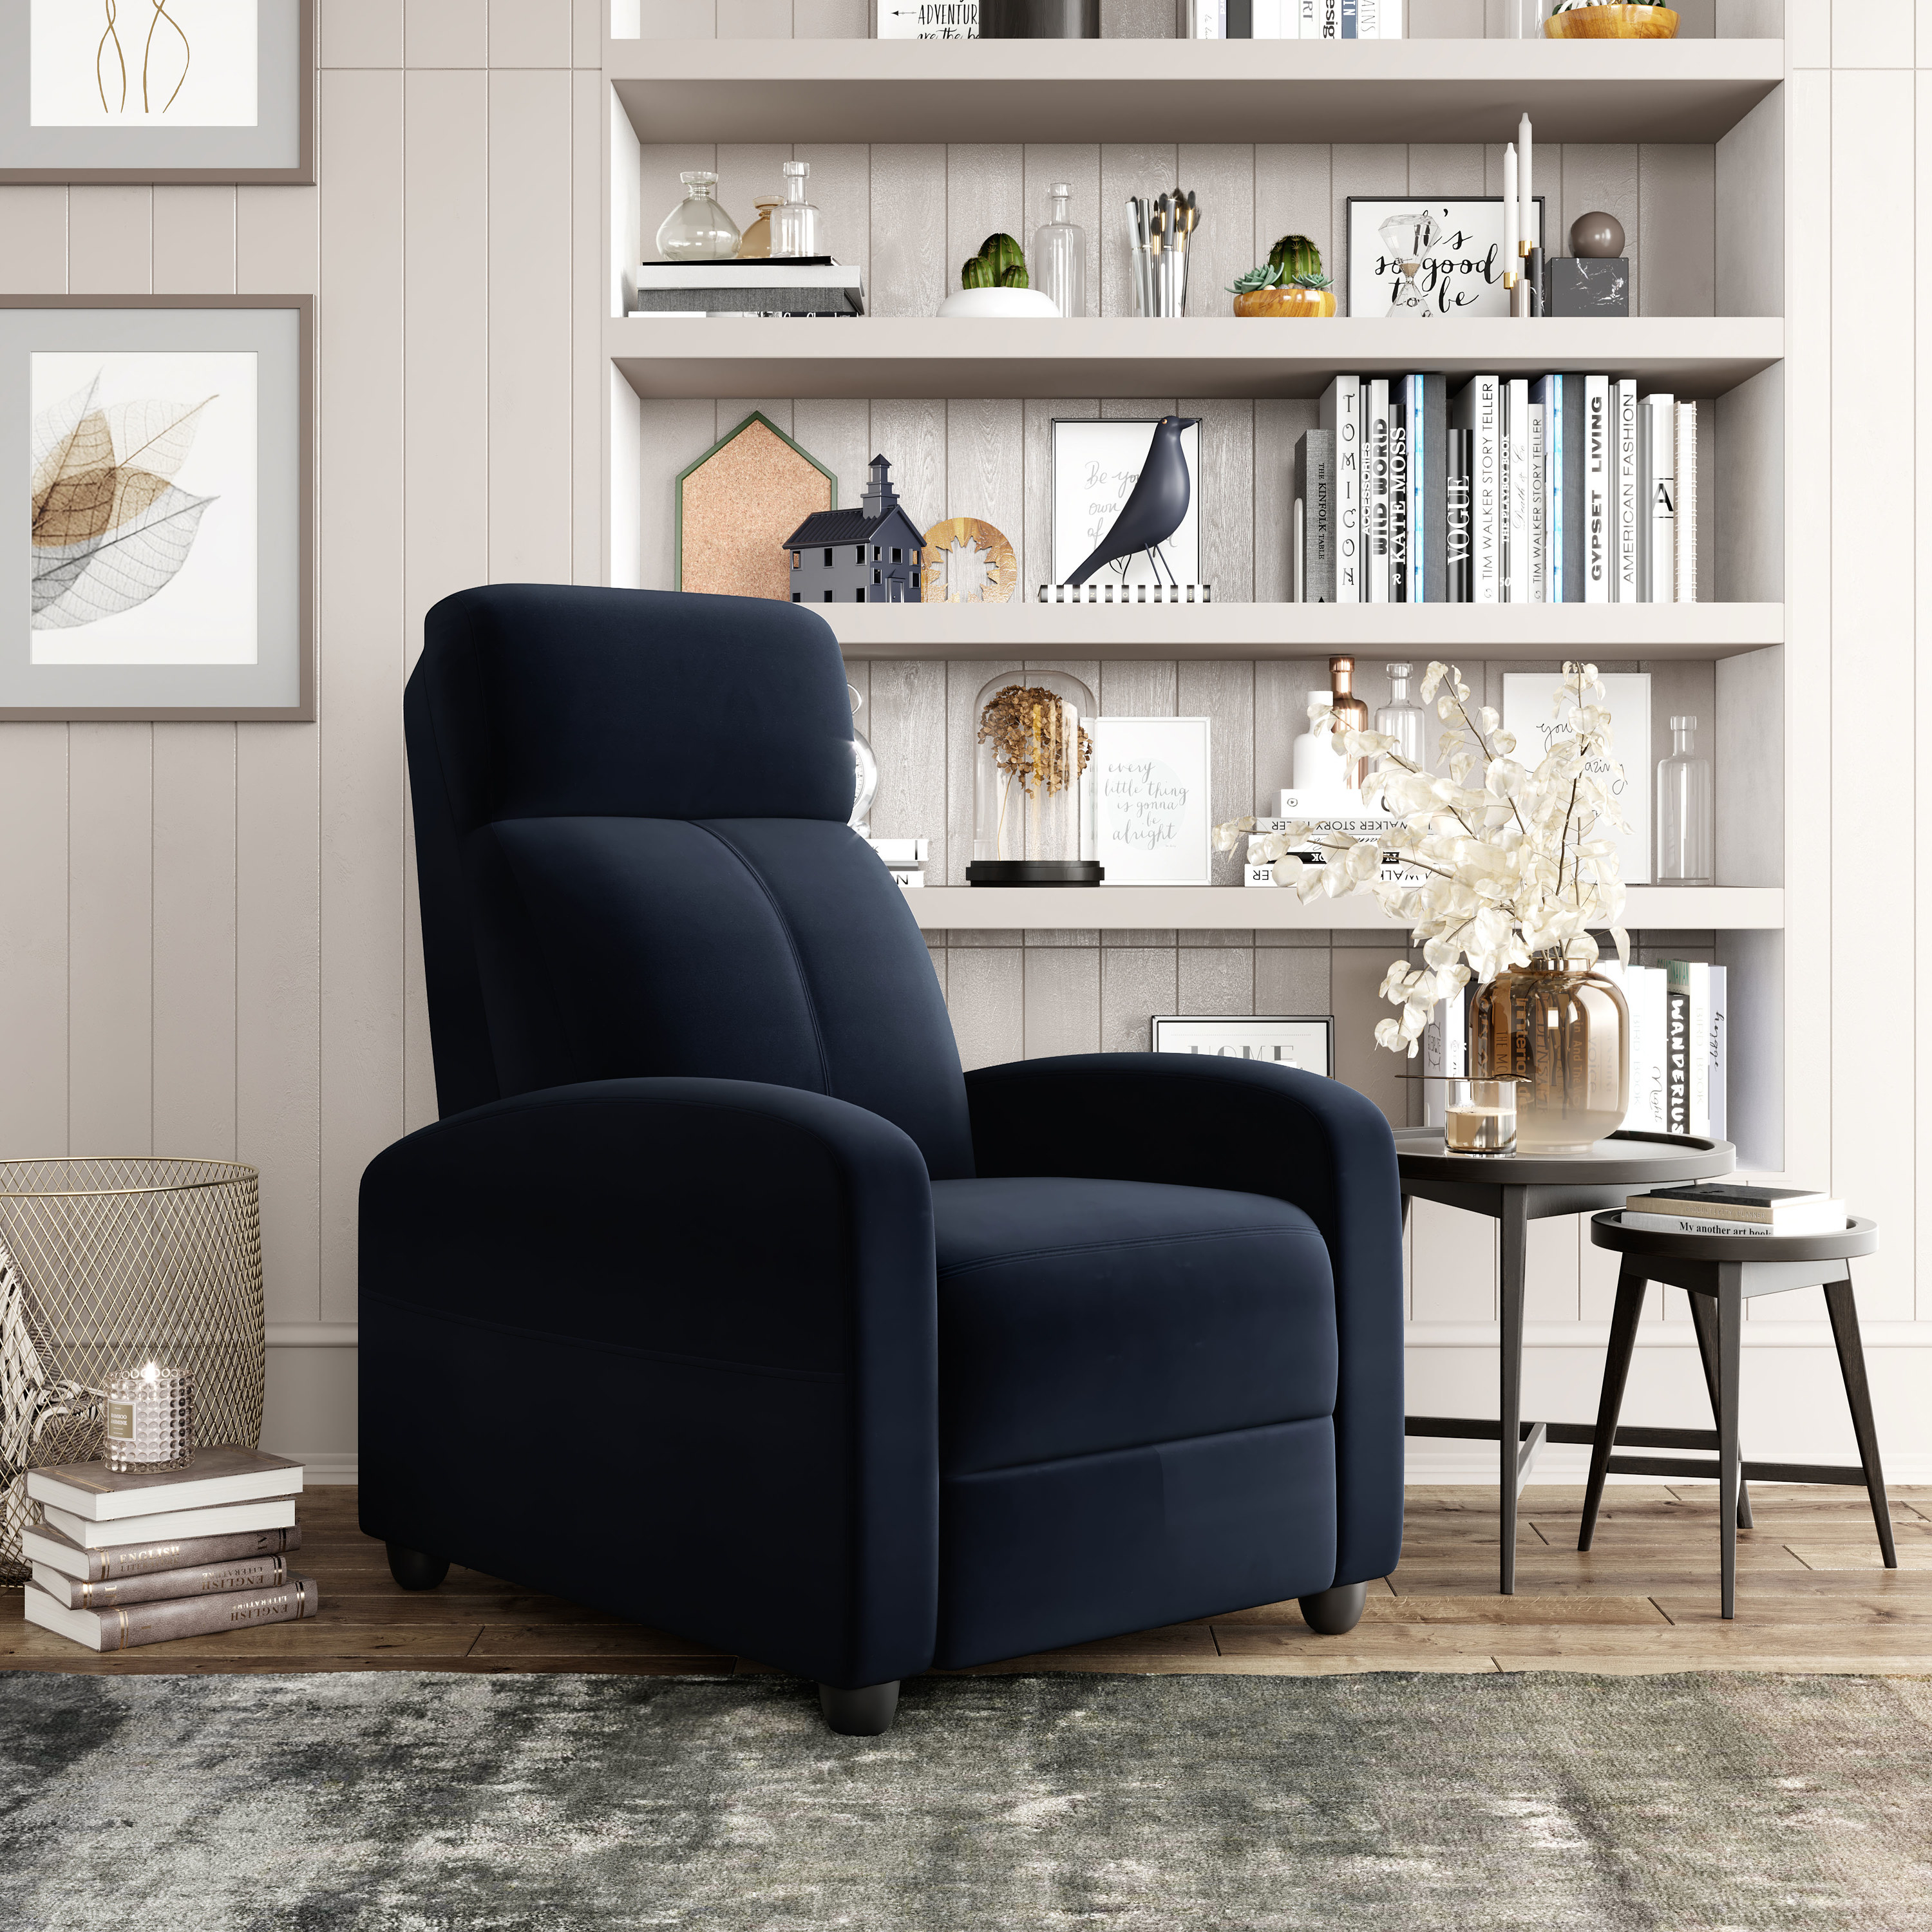 The black recliner in front of a bookshelf